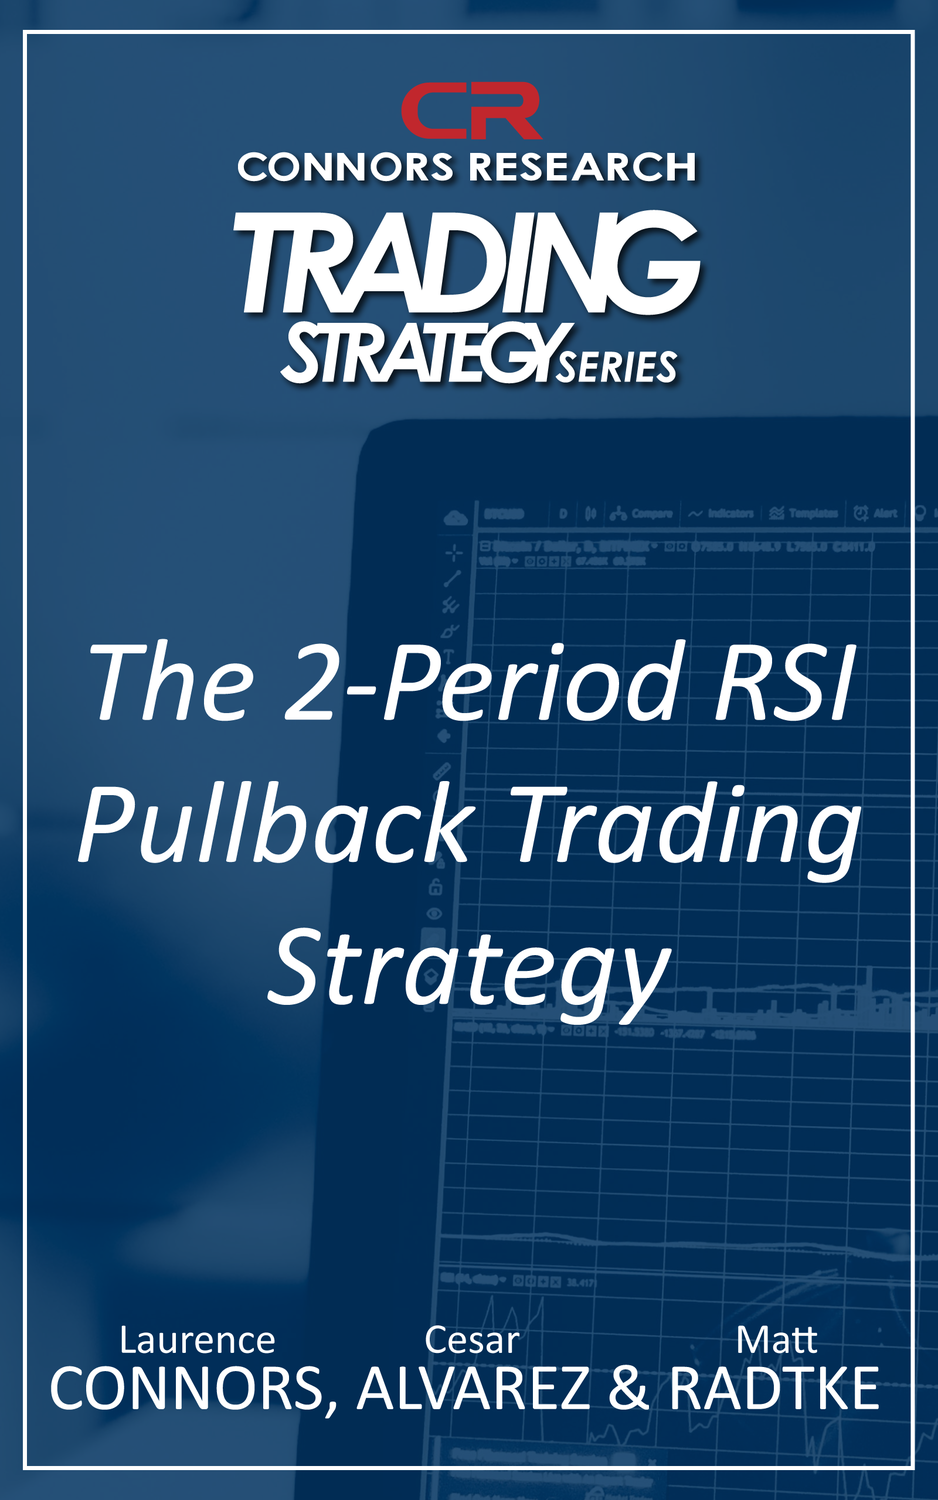 Connors Research Trading Strategy Series: The 2‐Period RSI Pullback Trading Strategy